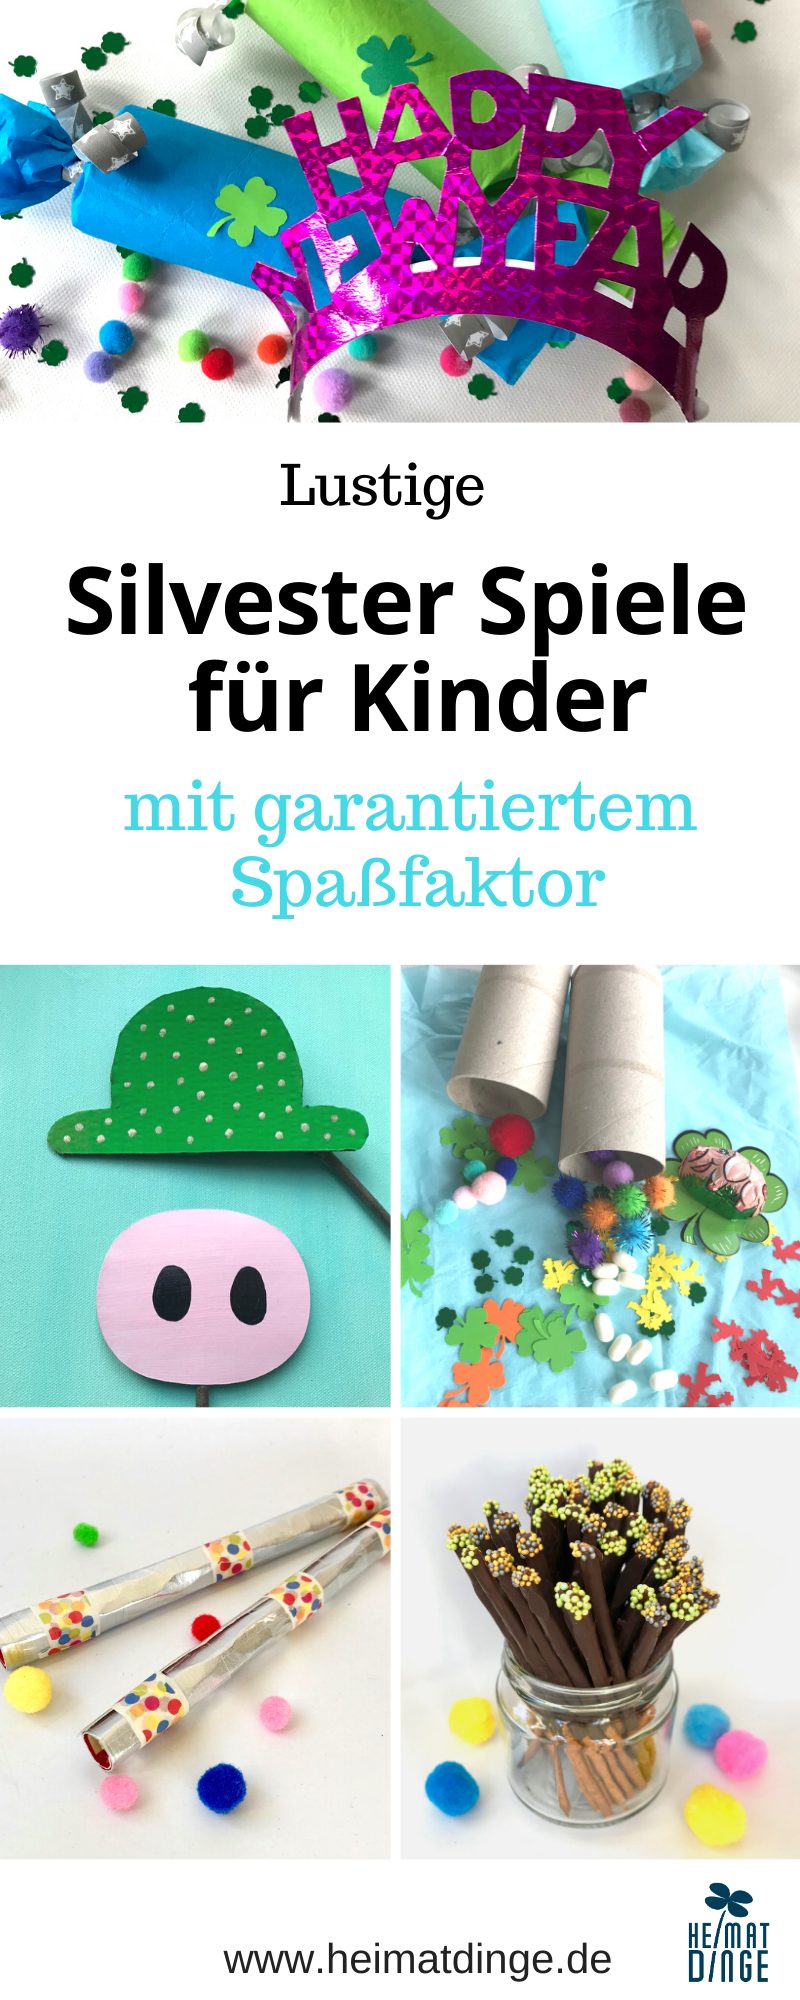 Silvester mit Kindern feiern, Silvesterparty Spiele Essen, Upcycling Kinder